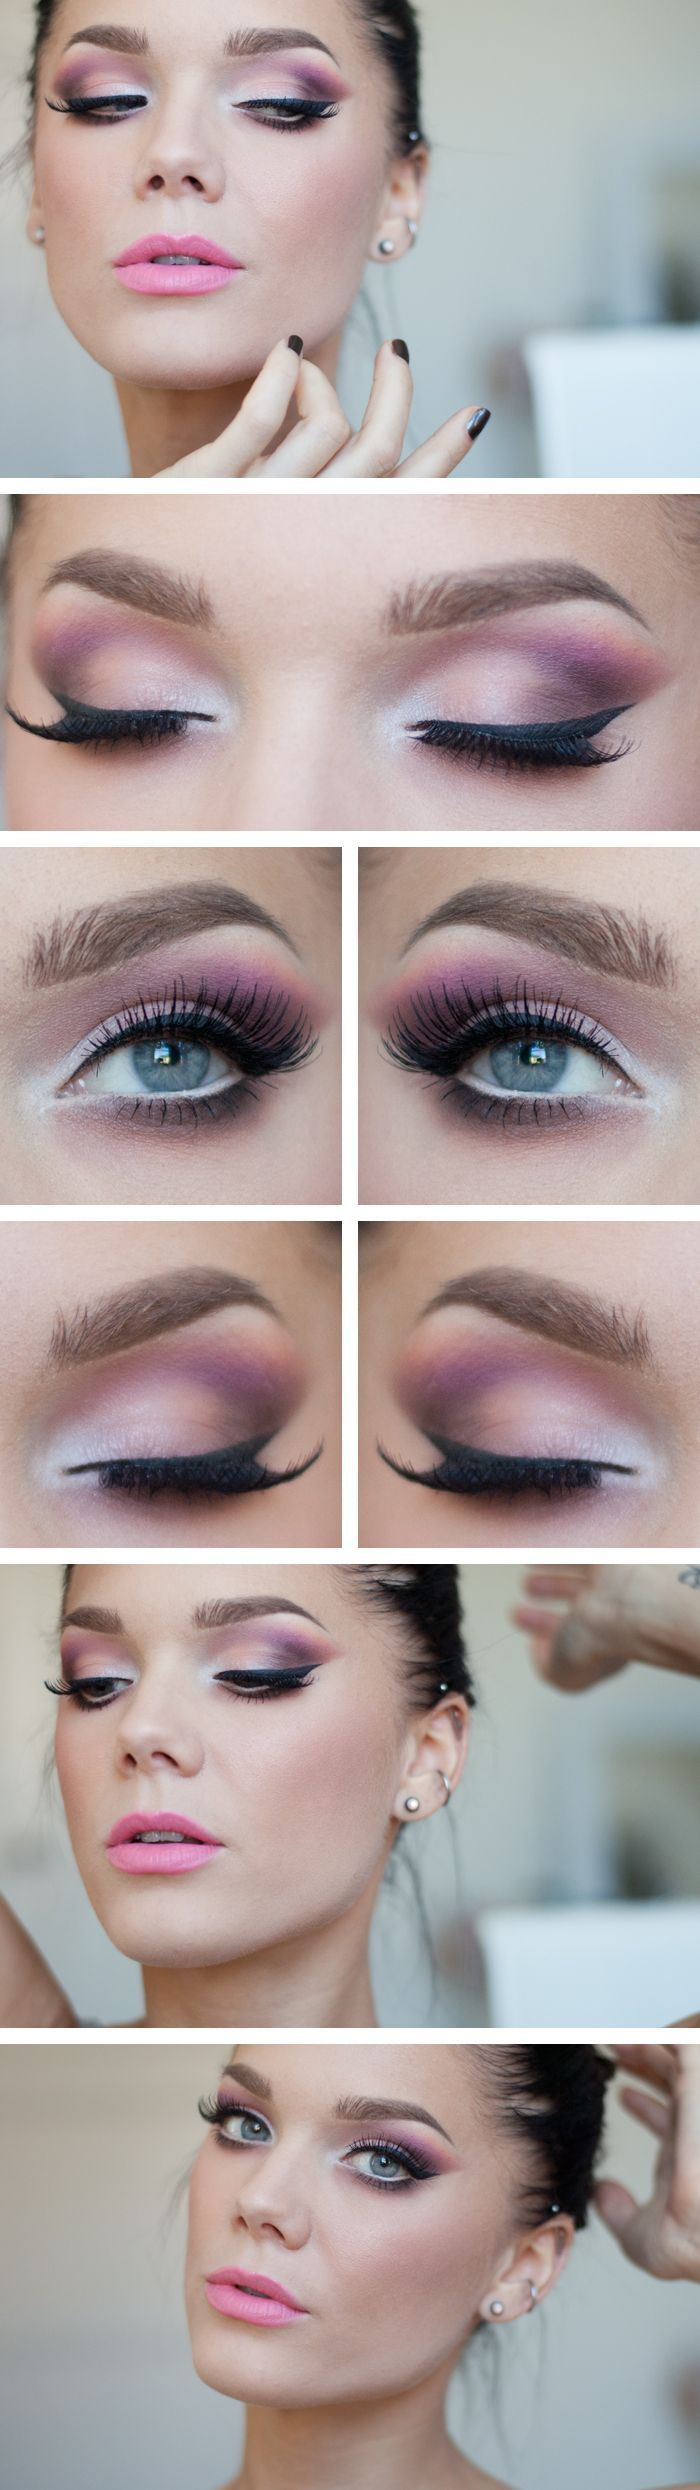 Pink eyeshadow tutorials